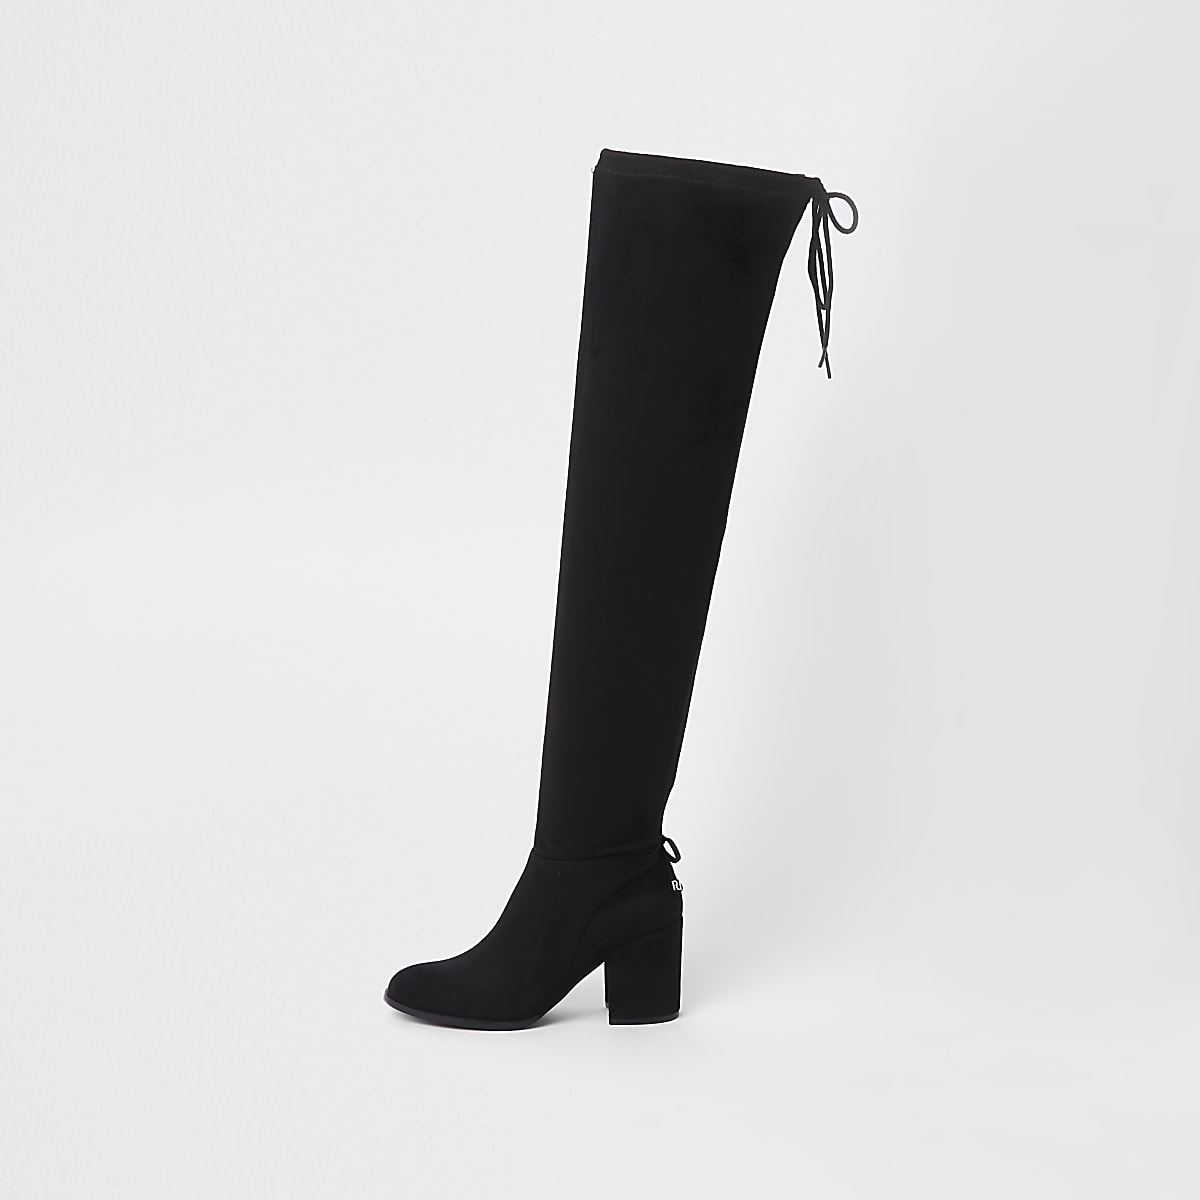 696531c07ff Black faux suede over the knee boots - Boots - Shoes   Boots - women